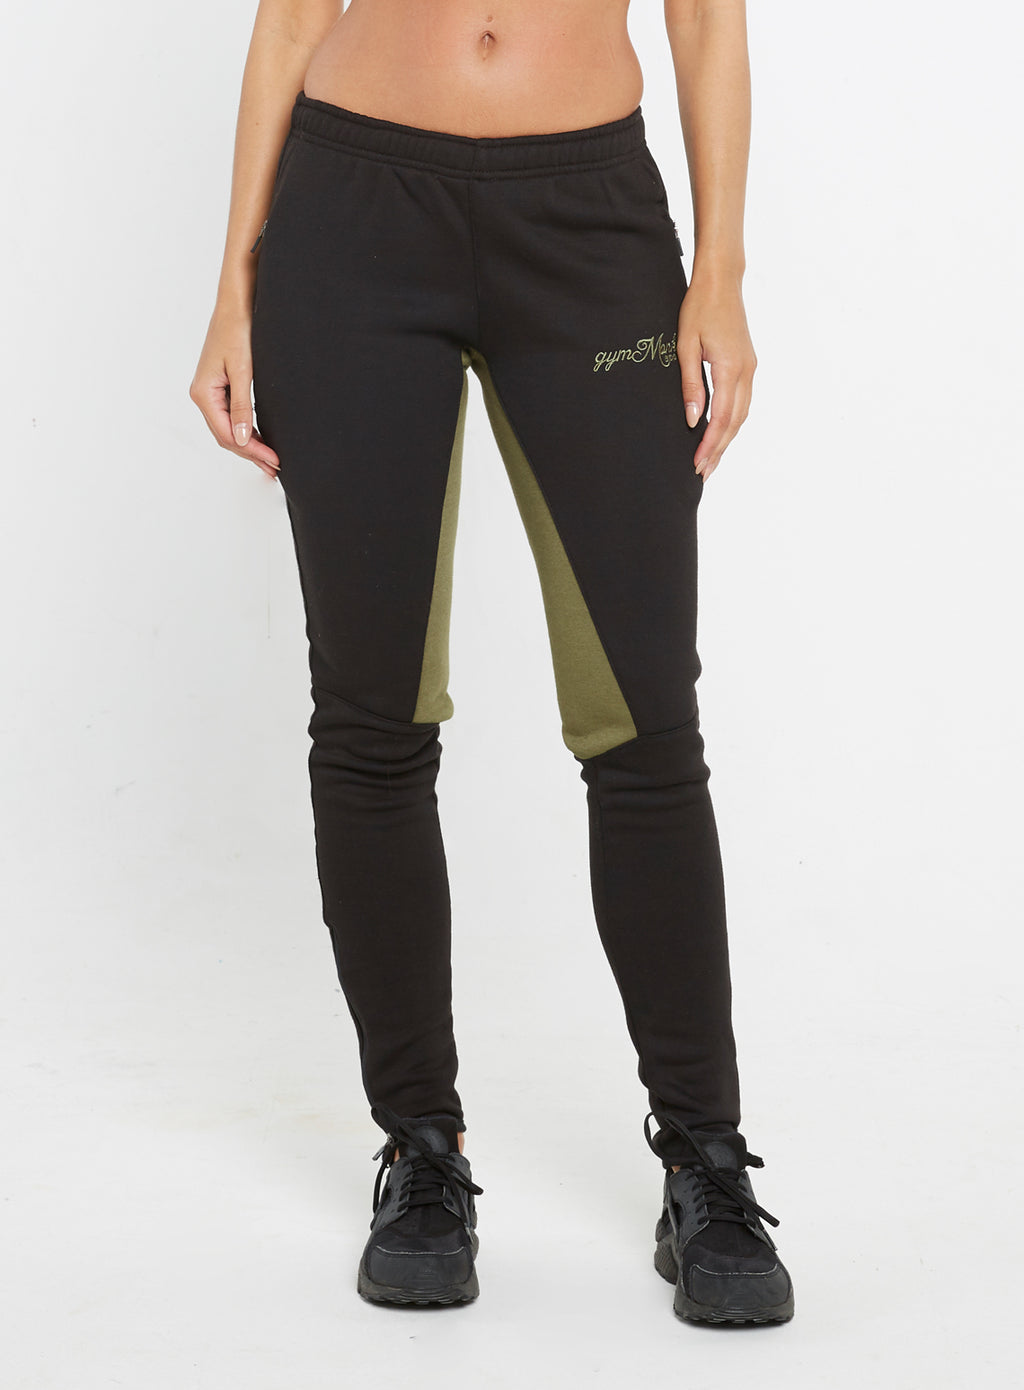 Gym Monkee - Ladies Black and Khaki Joggers FRONT